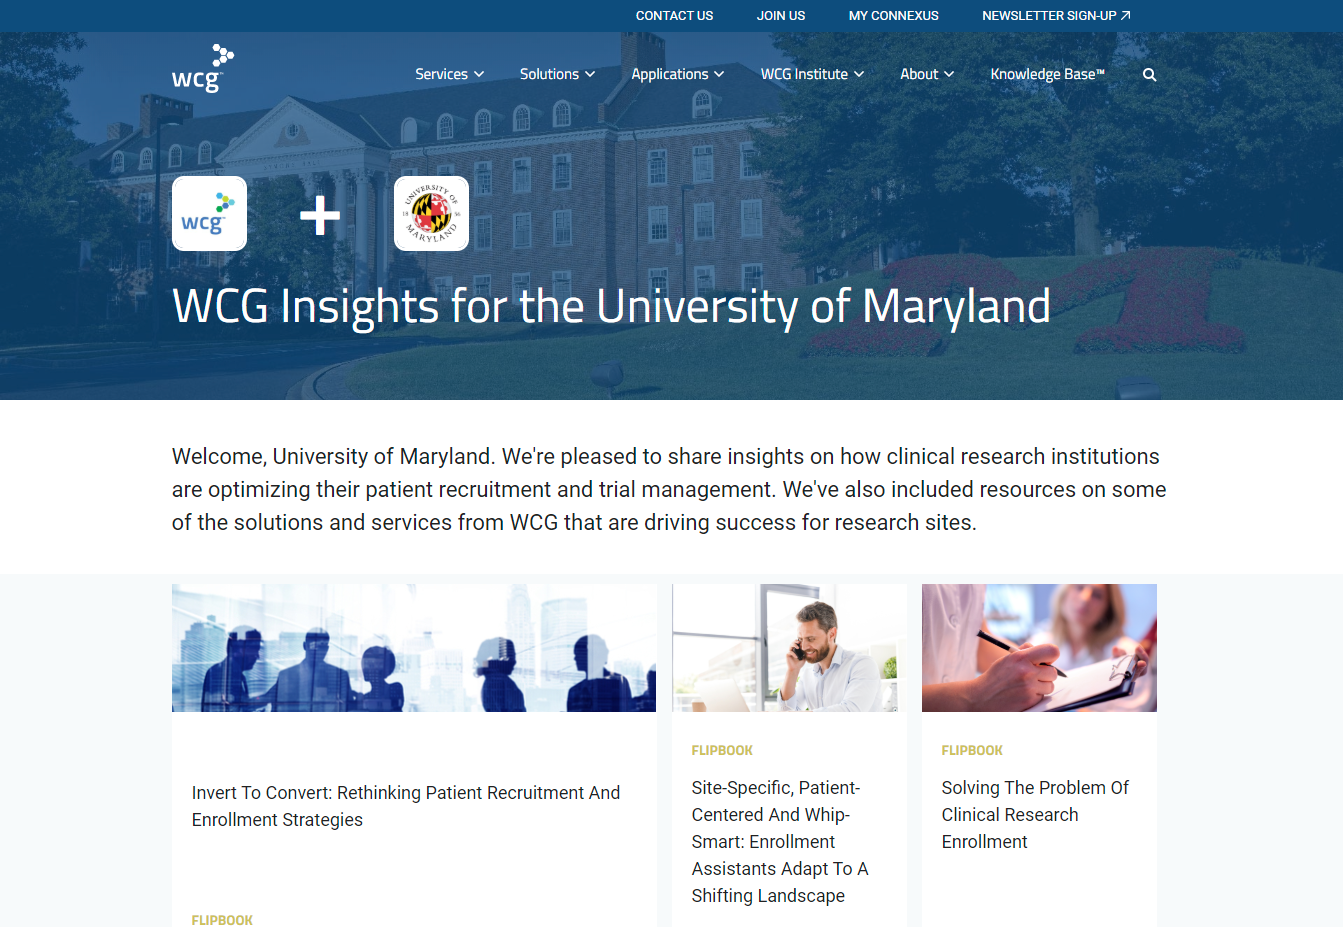 Content destination personalized for the University of Maryland